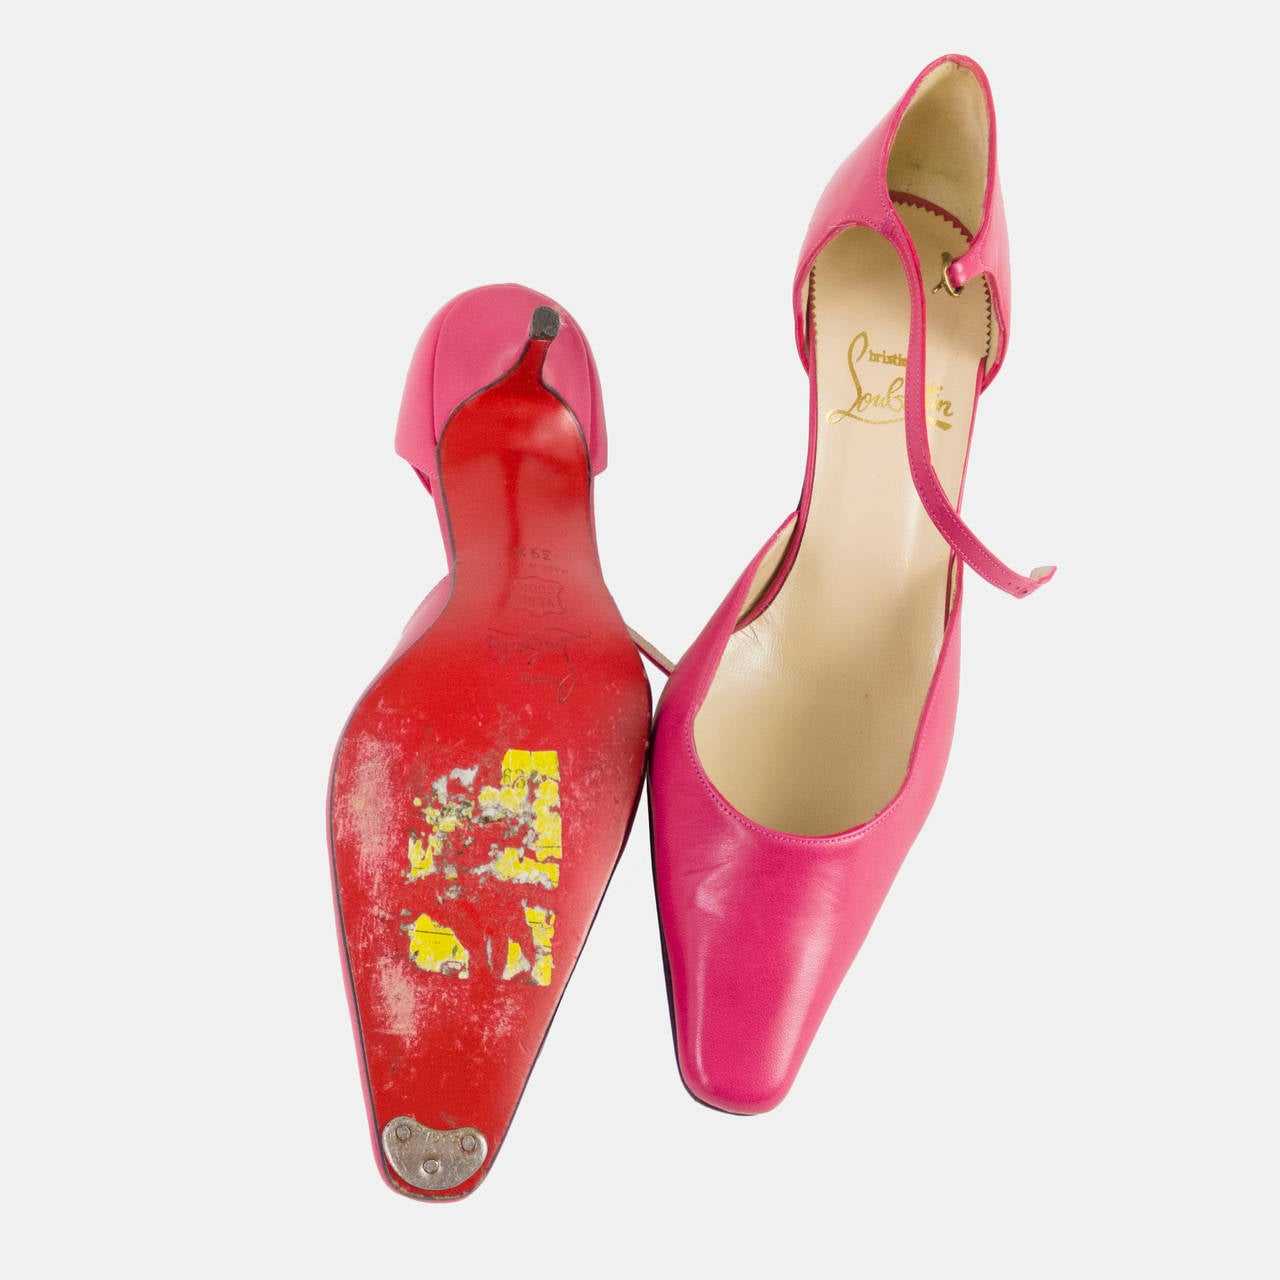 Women's Christian Louboutin Leather Hot Pink Fuscia Shoes Size 39.5 For Sale